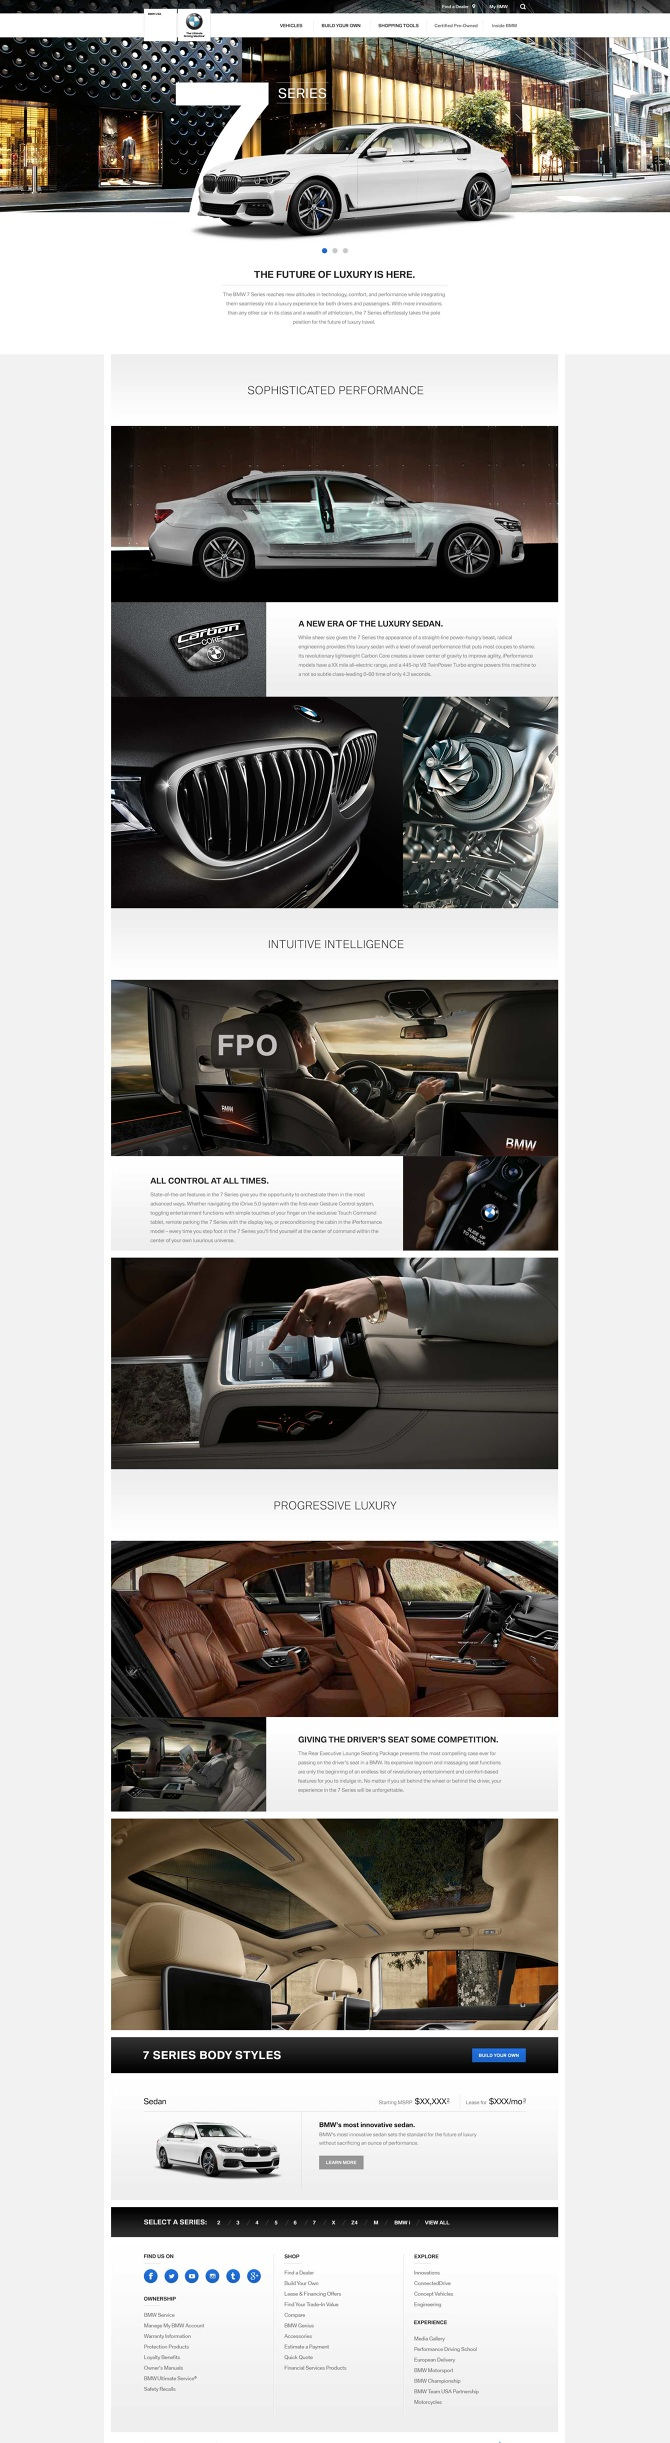 BMWRedesign_P2_7Series_Overview_2016_0415_670.jpg